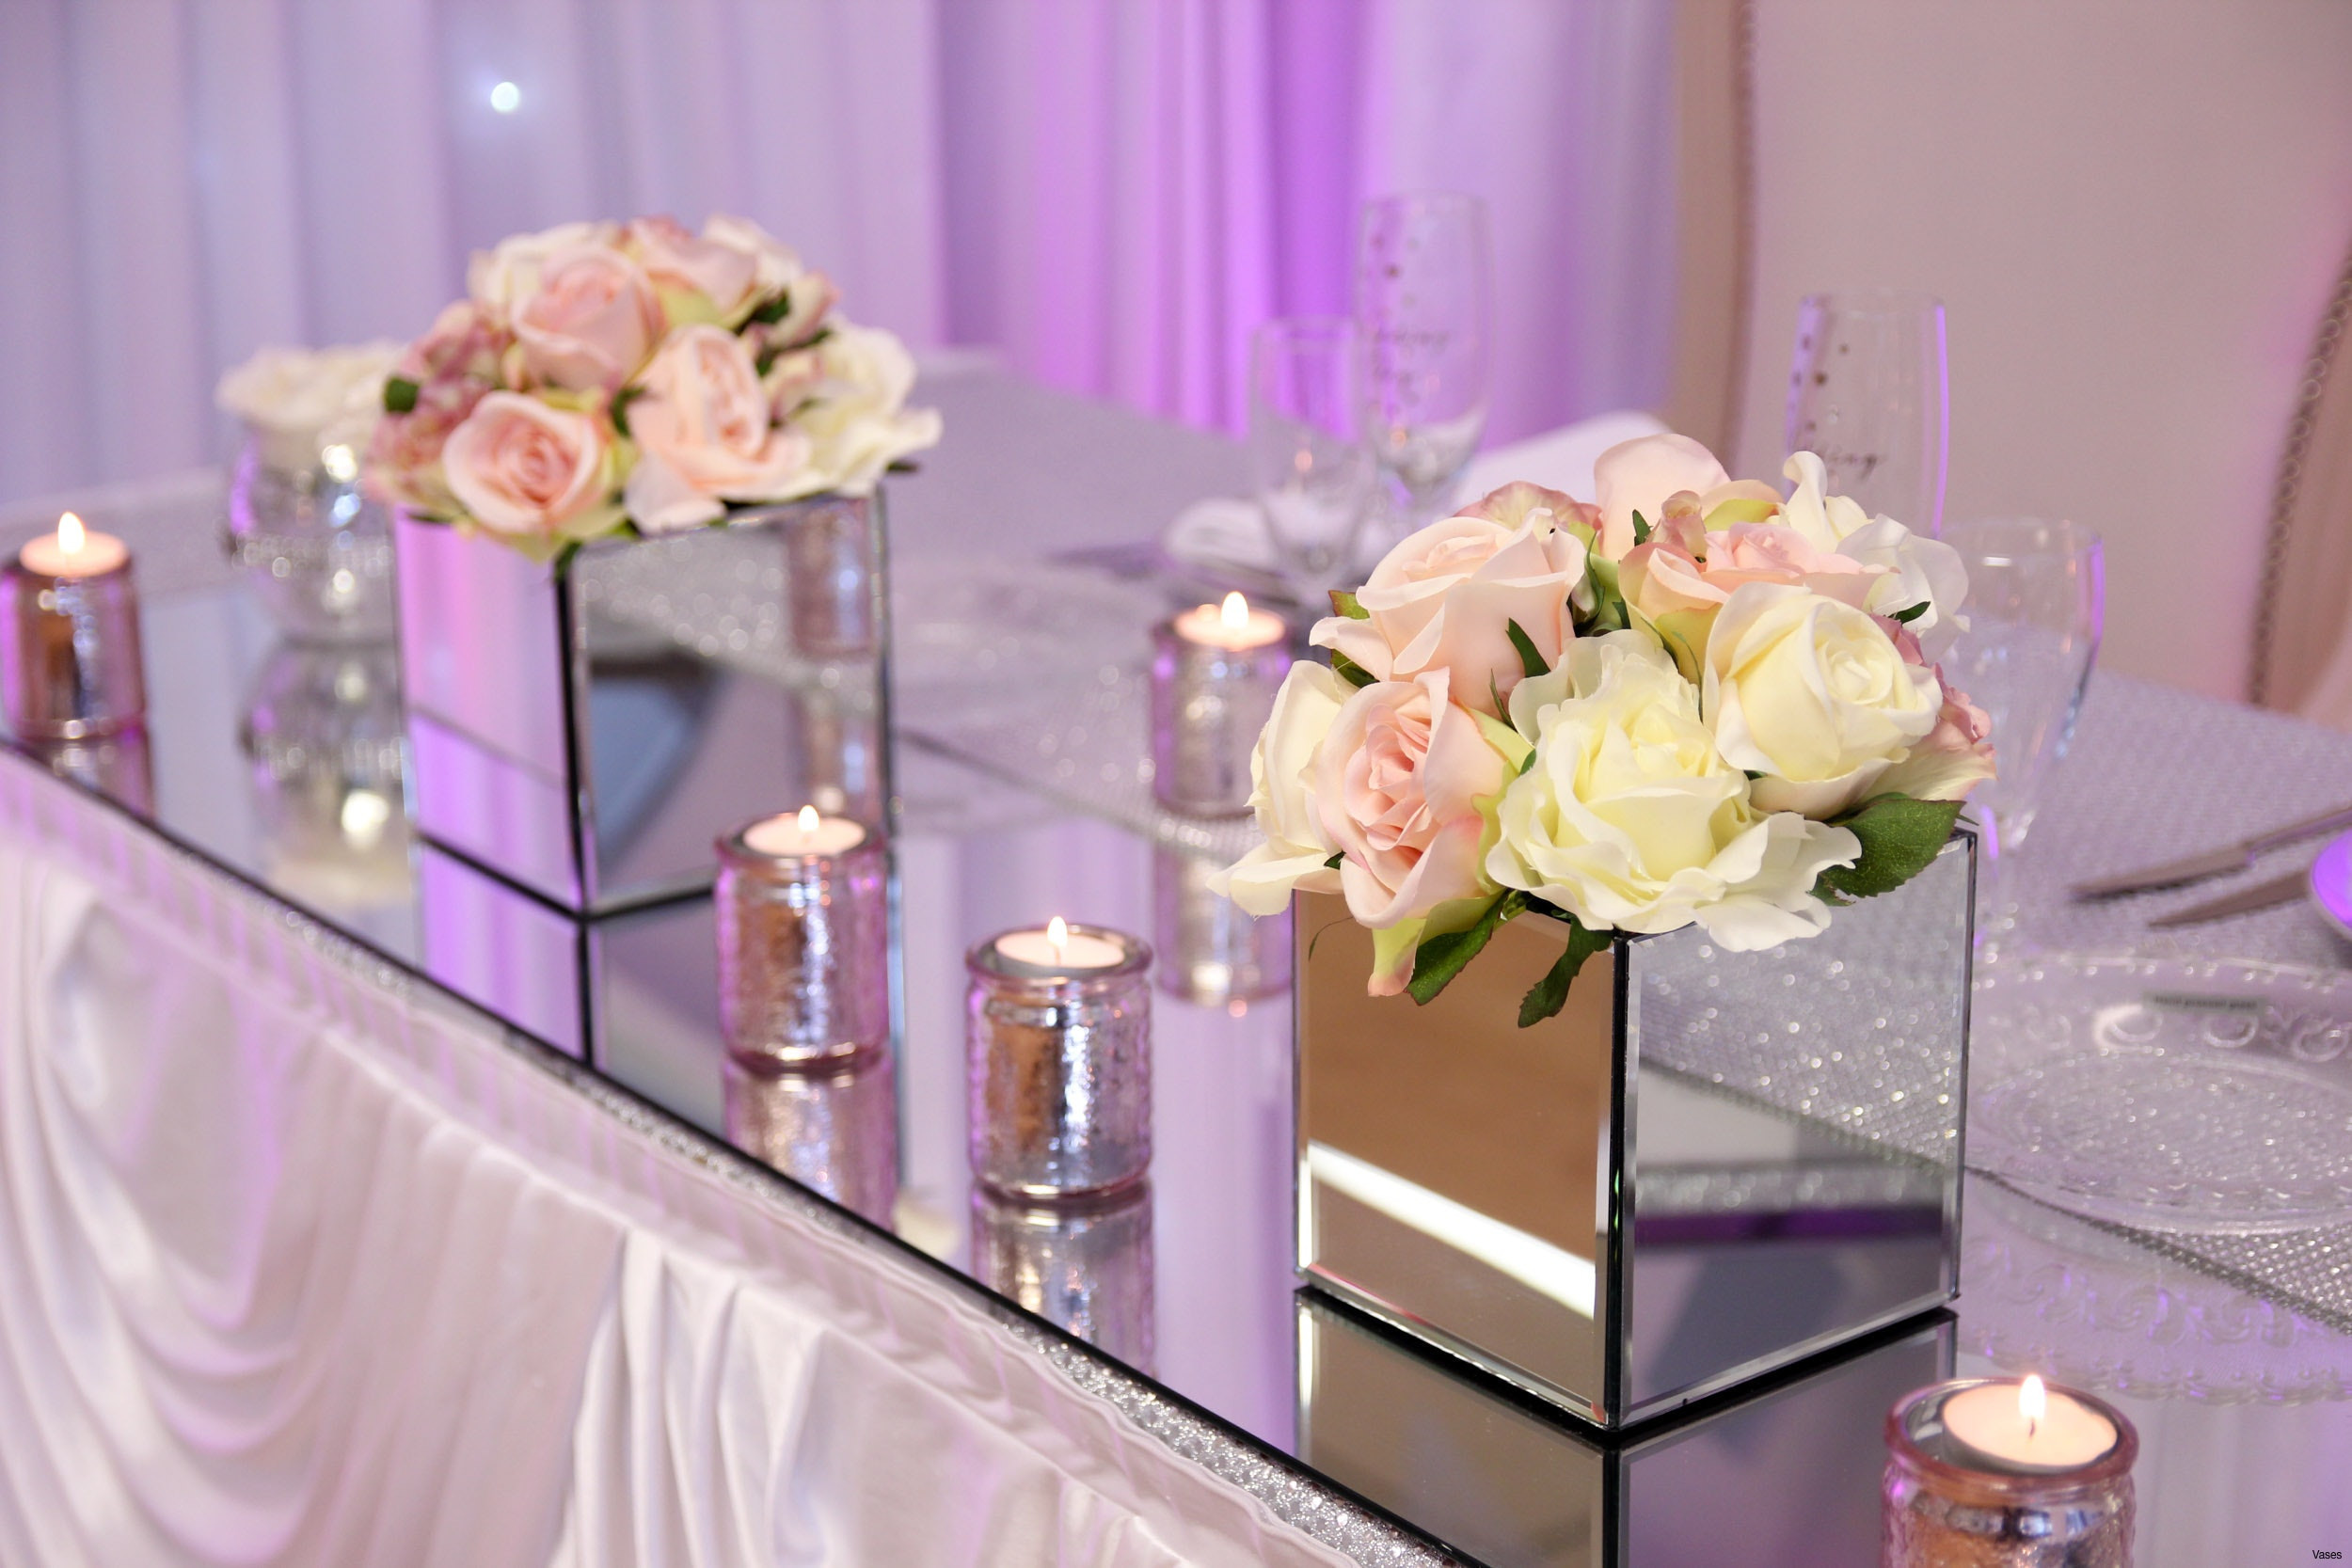 martini glass vase centerpieces of wedding party favors new wedding wedding party favors ideas elegant intended for wedding party favors awesome mirrored square vase 3h vases mirror table decorationi 0d weddings photos of